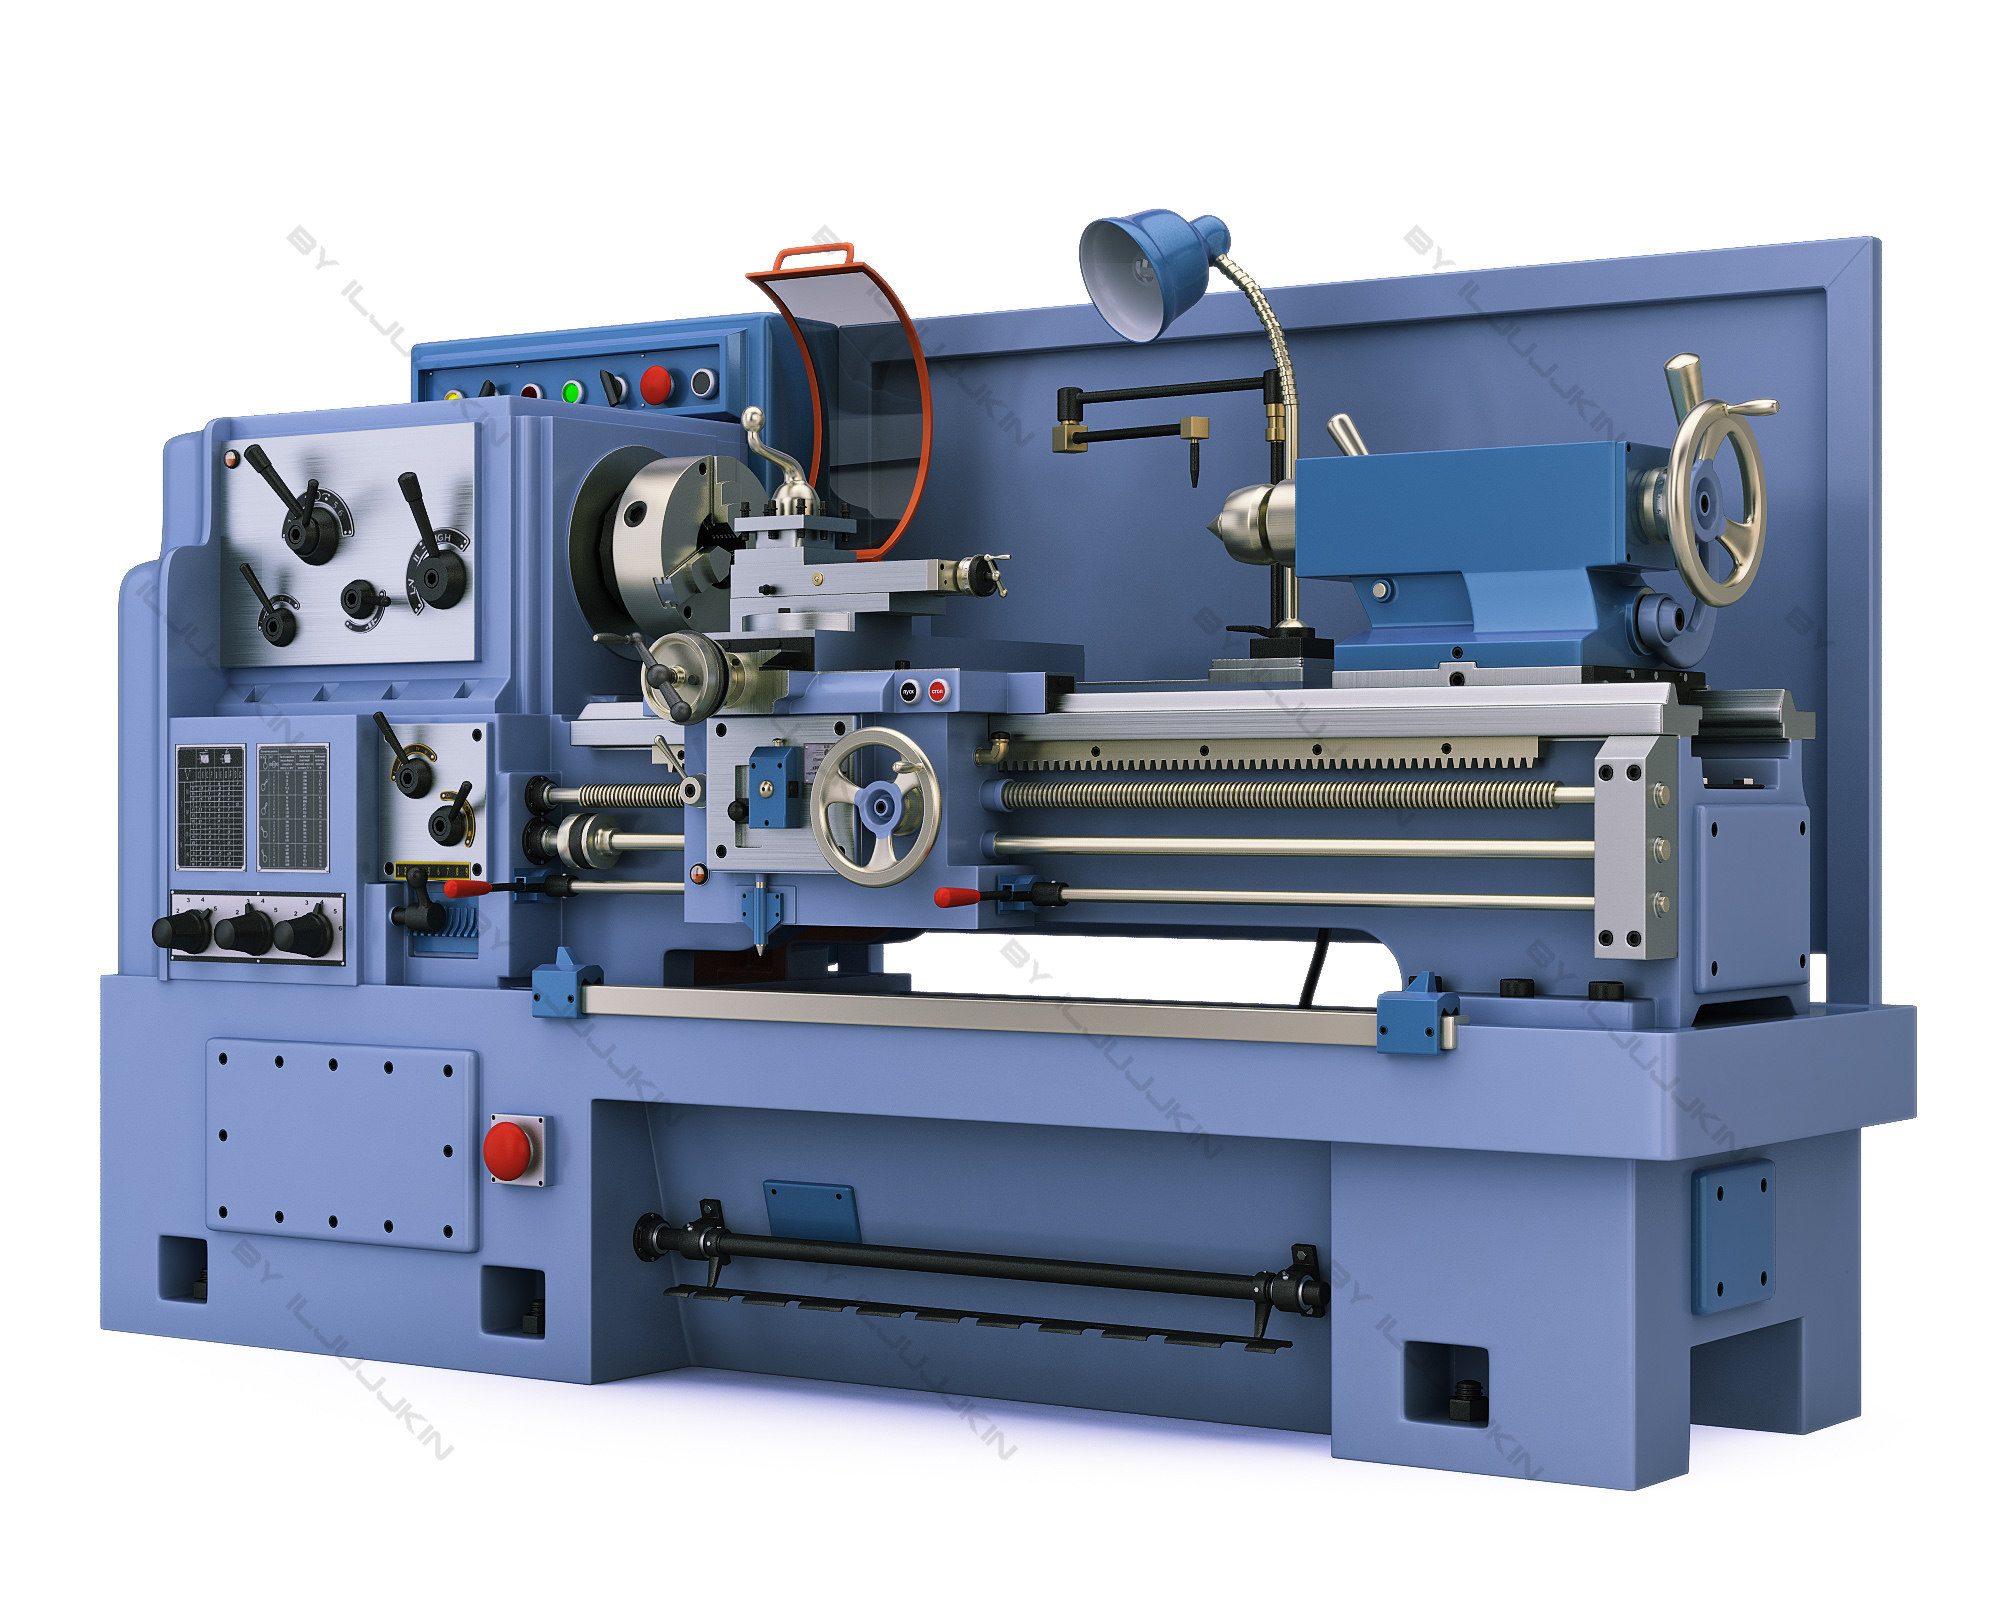 Lathe_machine_01.jpg